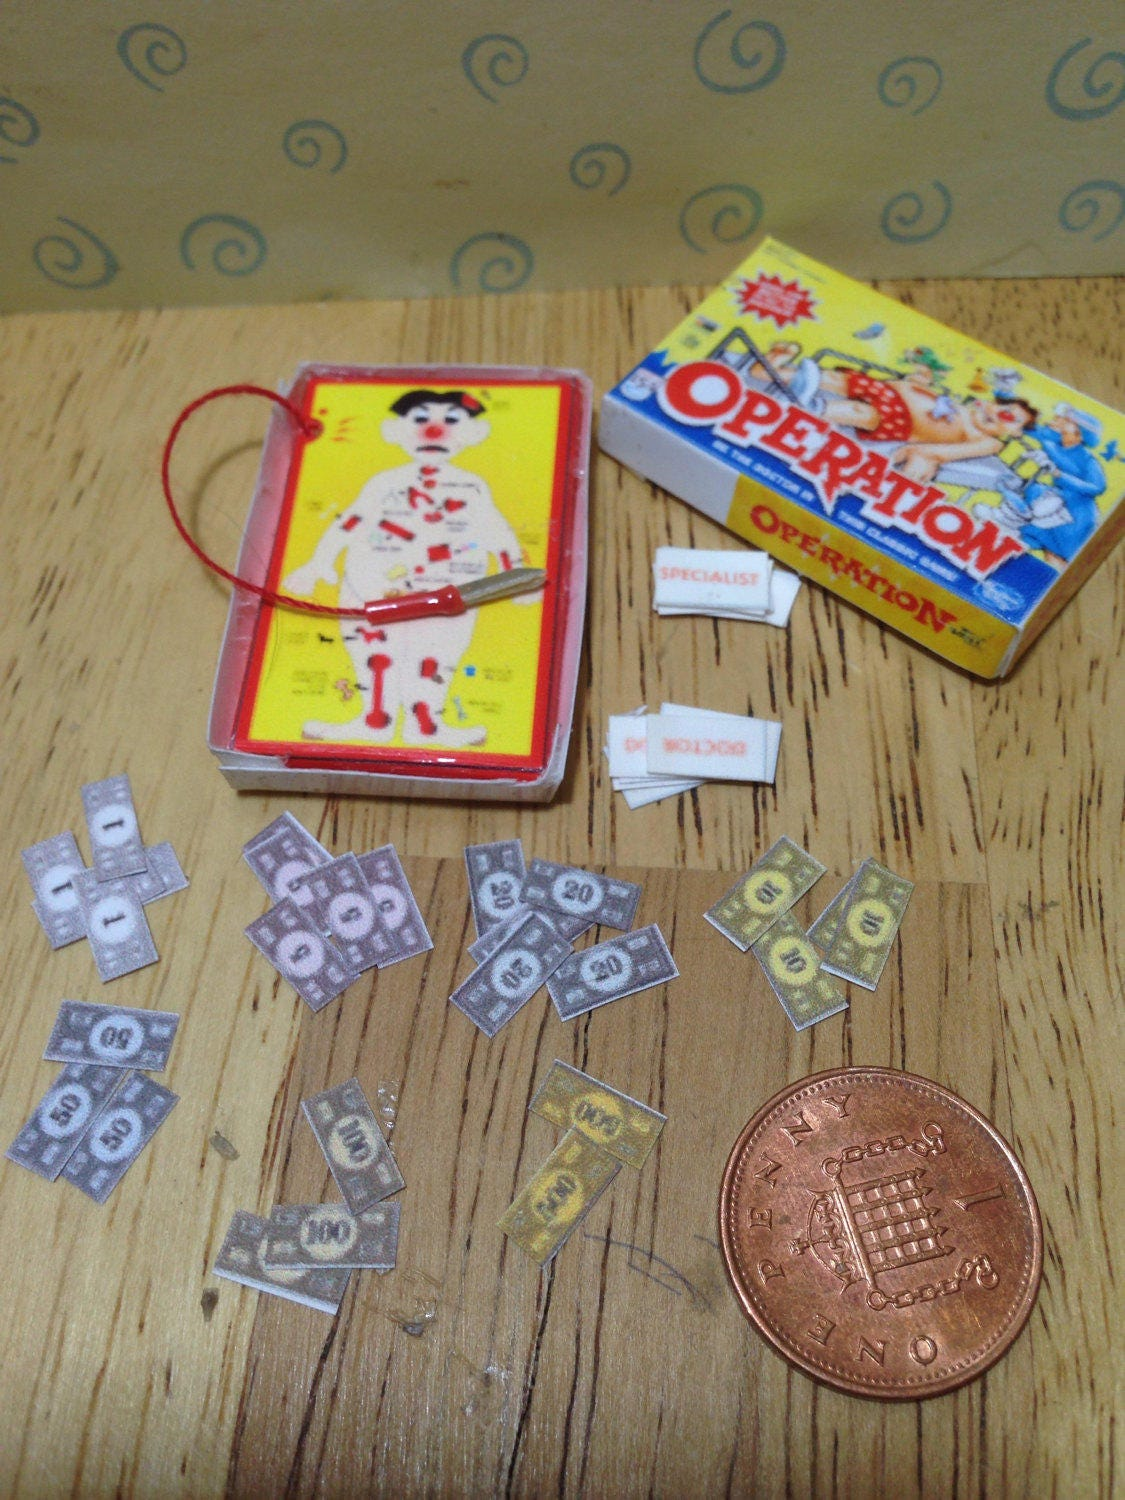 Dolls house miniature replica operation boxed game  for your dolls house nursery 112